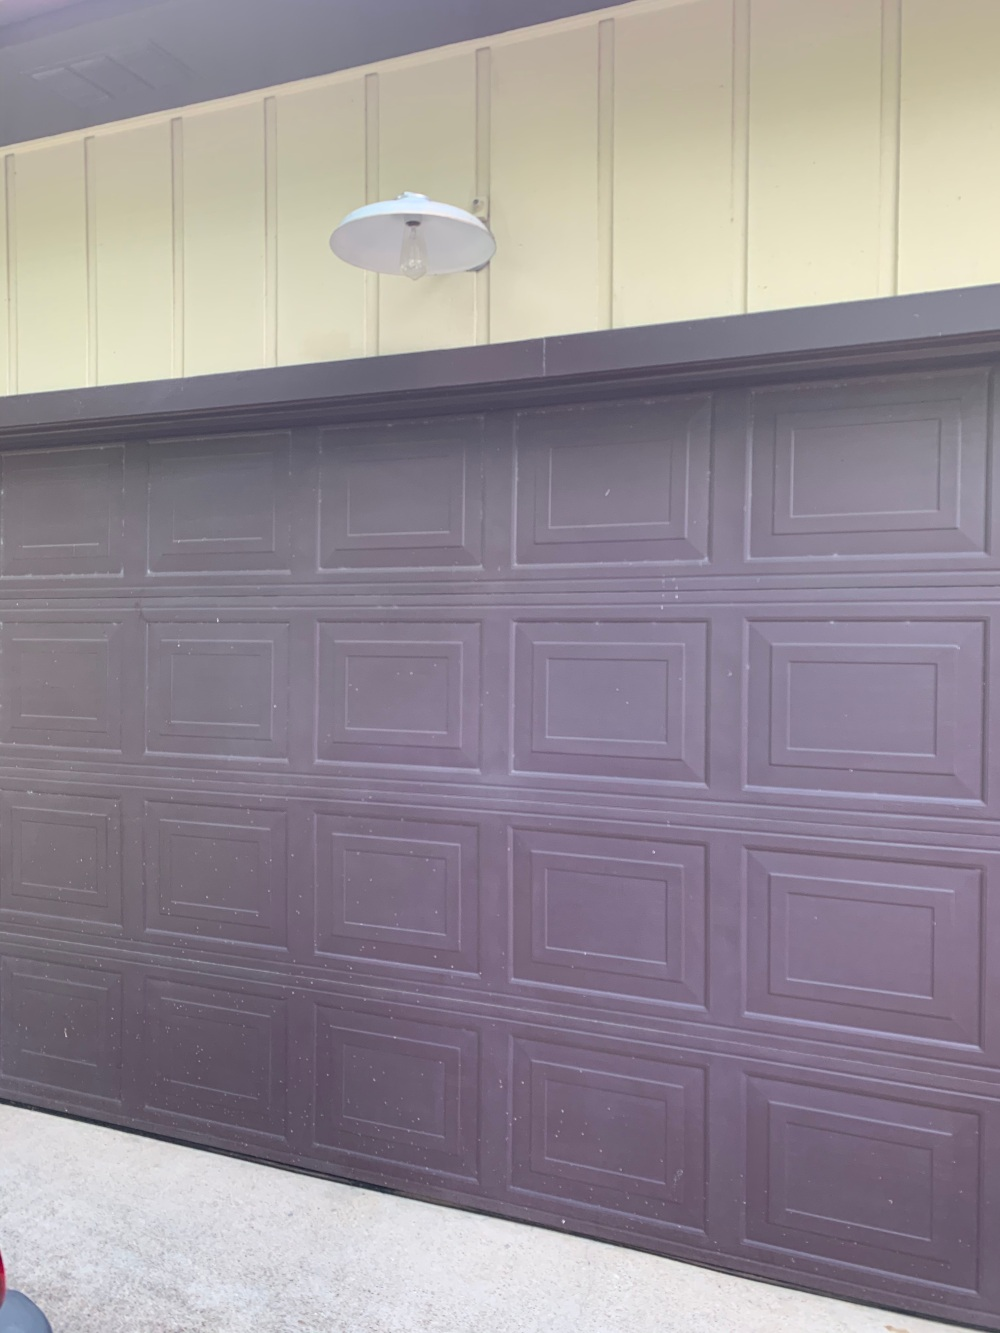 Garage Door with Former Small Silver Barn Light